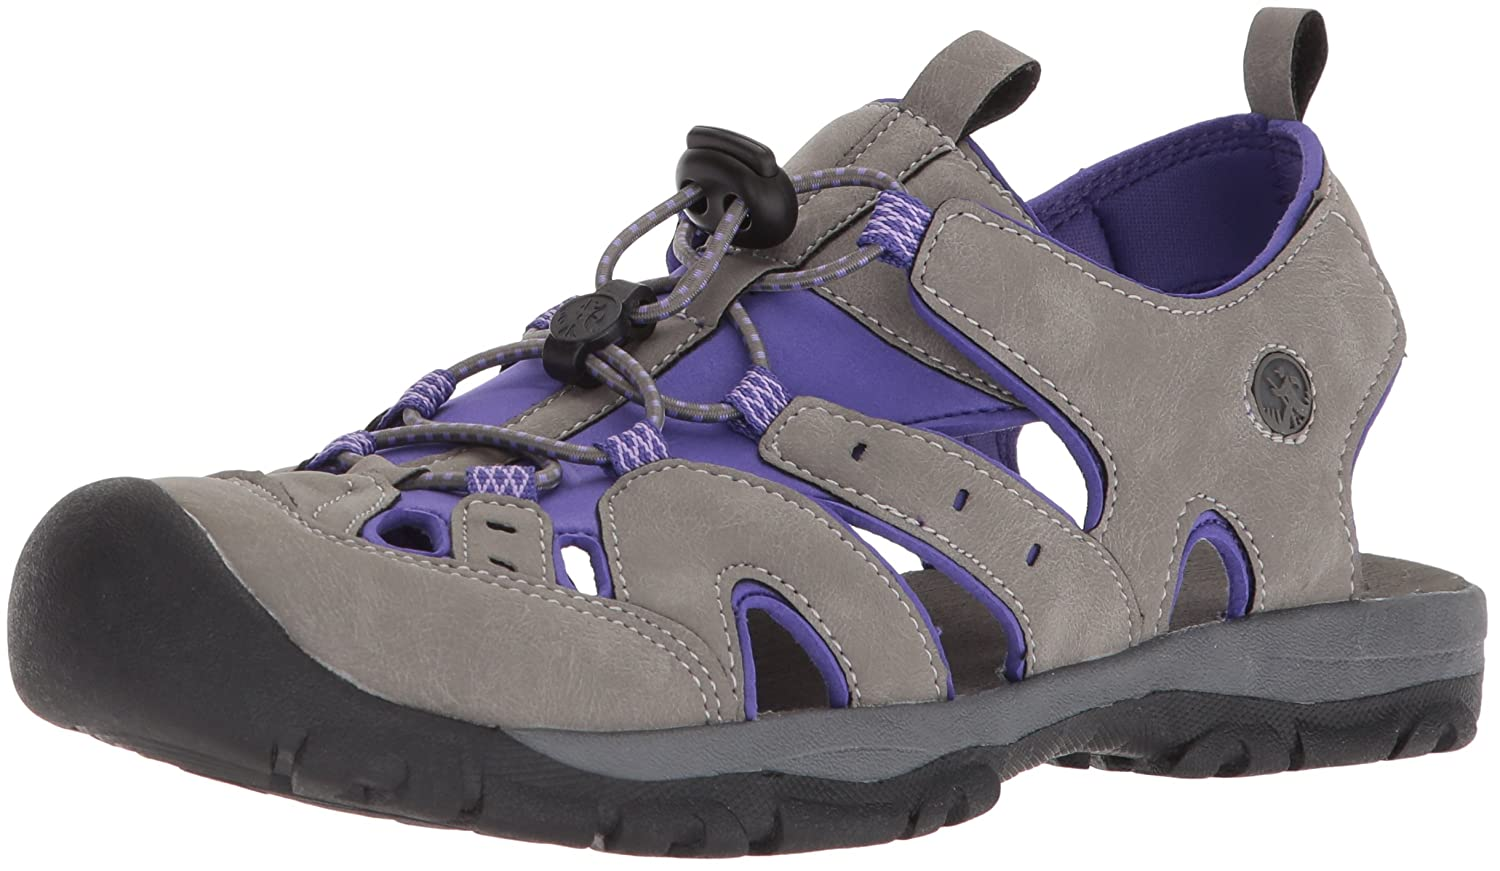 Northside Womens Burke II Sport Athletic Sandal B07C12K394 40 M EU|Purple/Gray